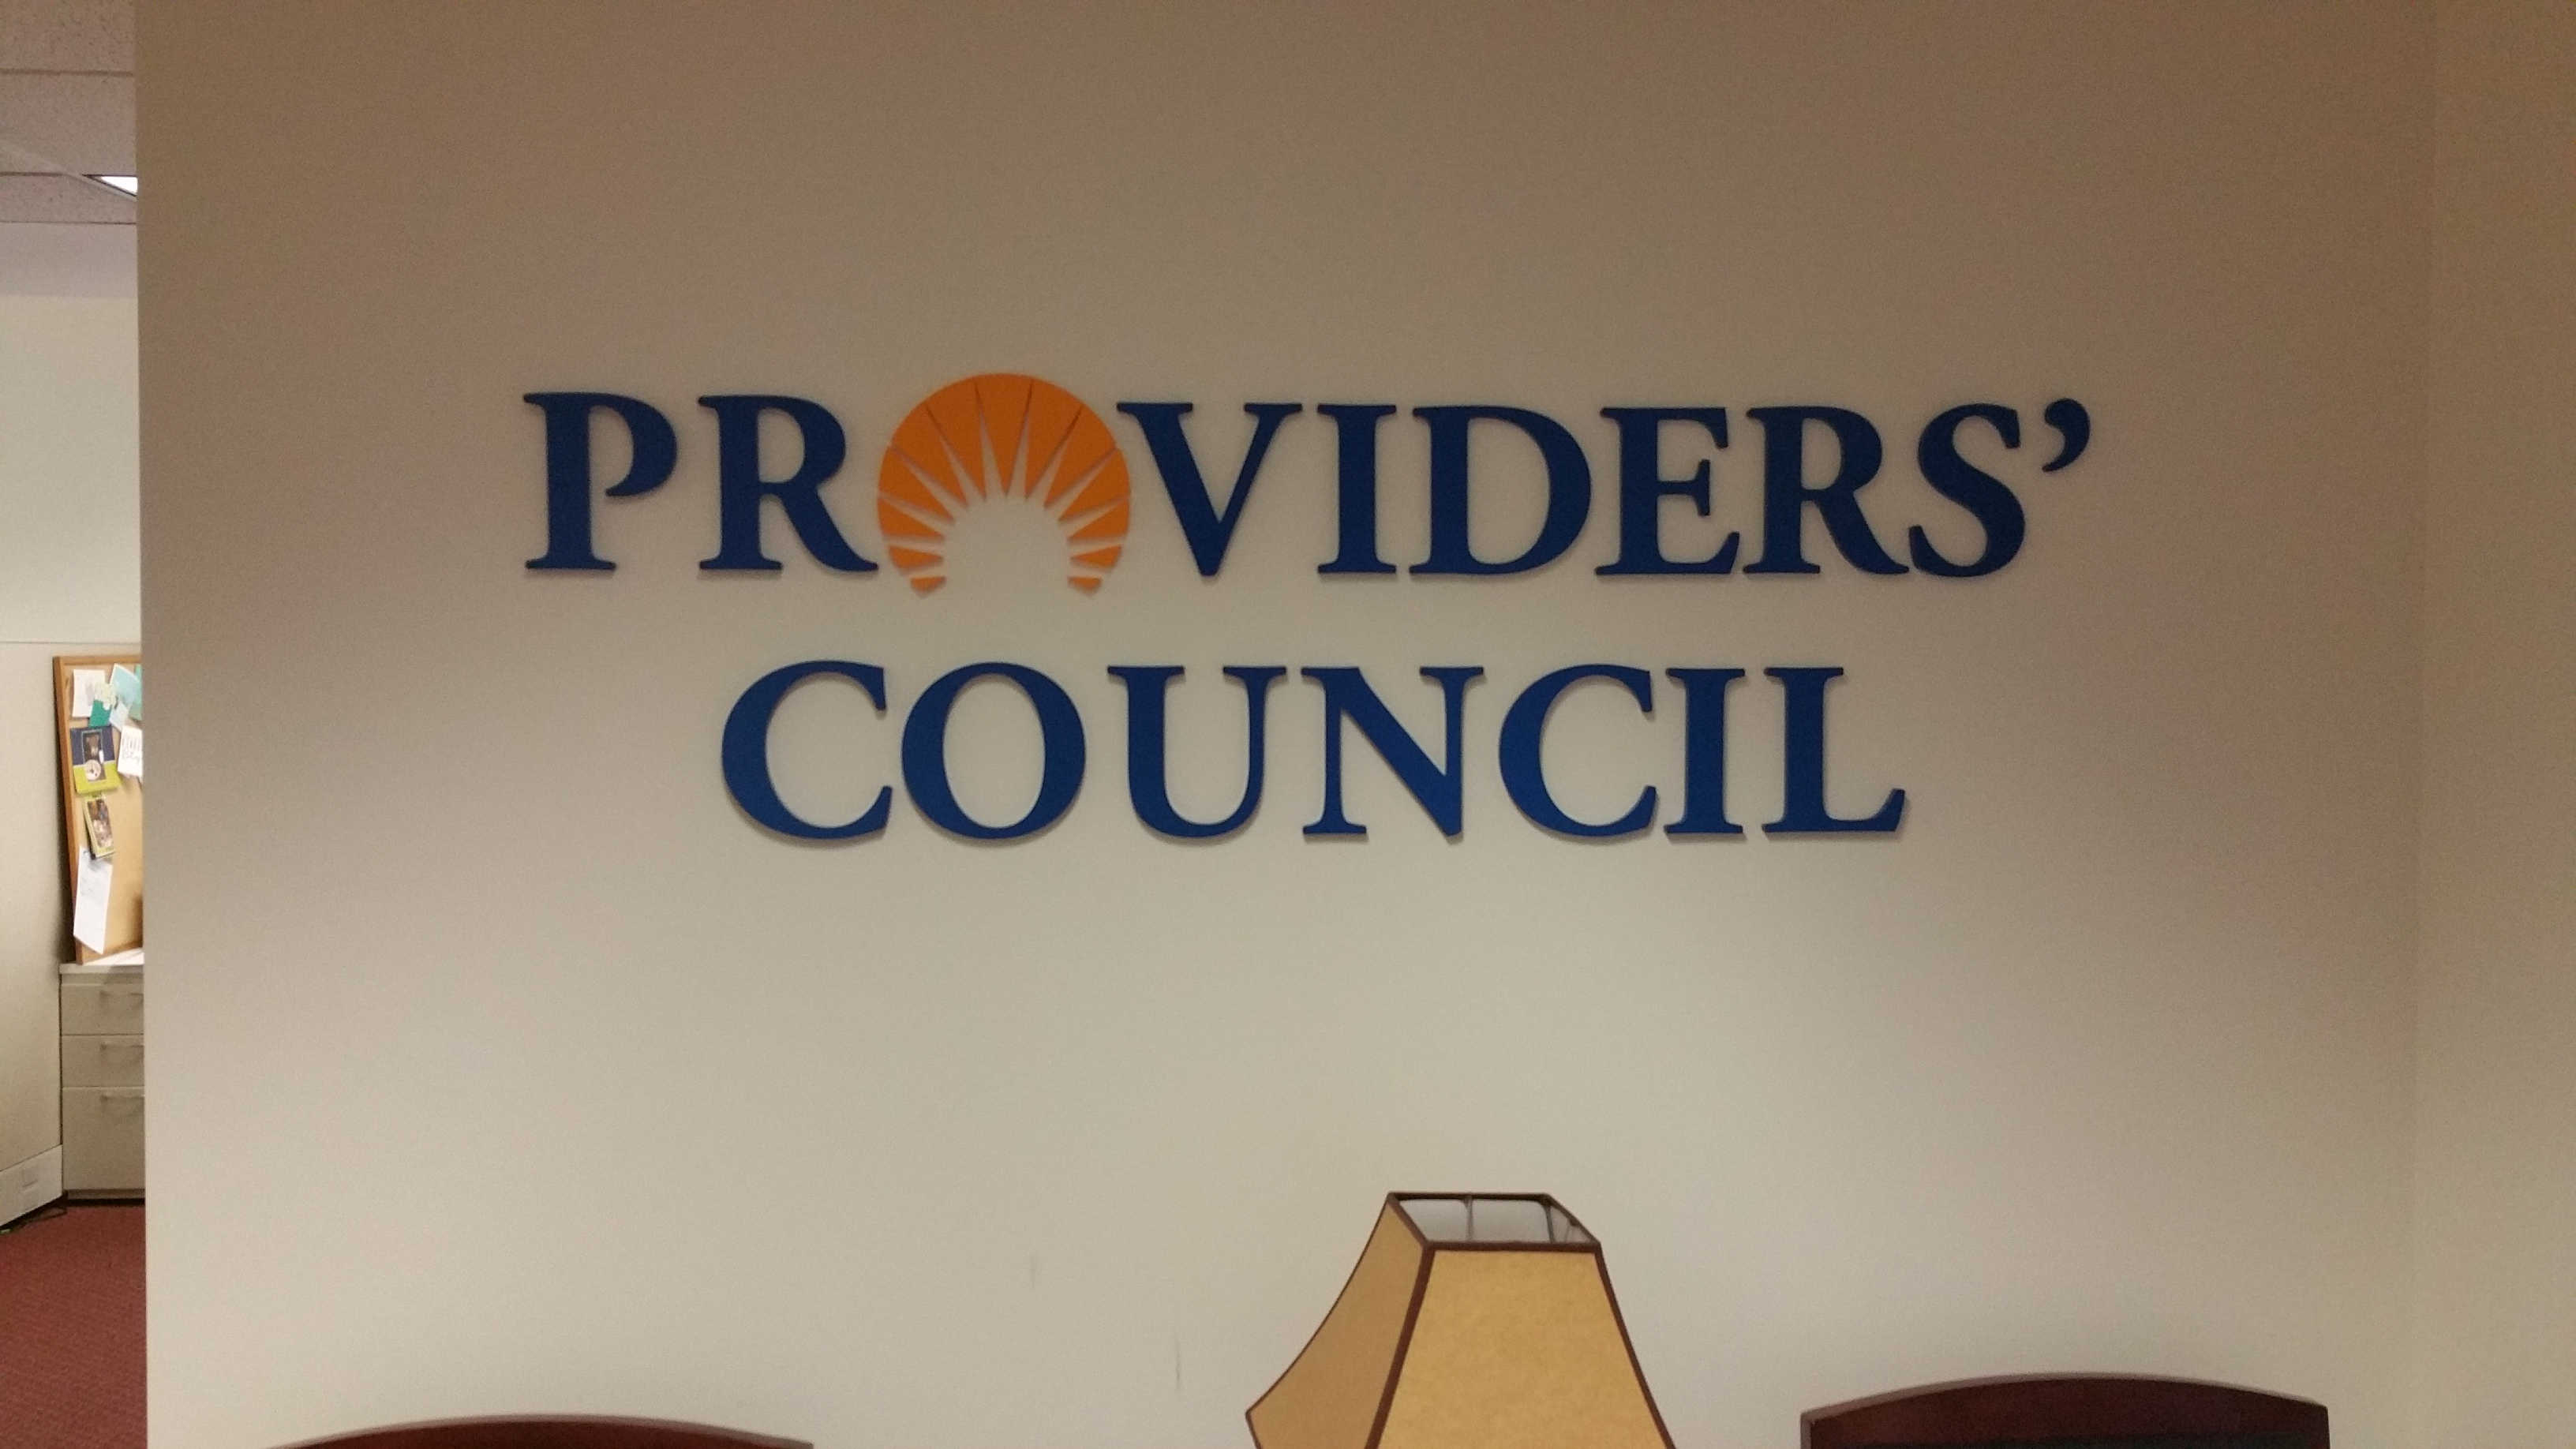 Providers' Council